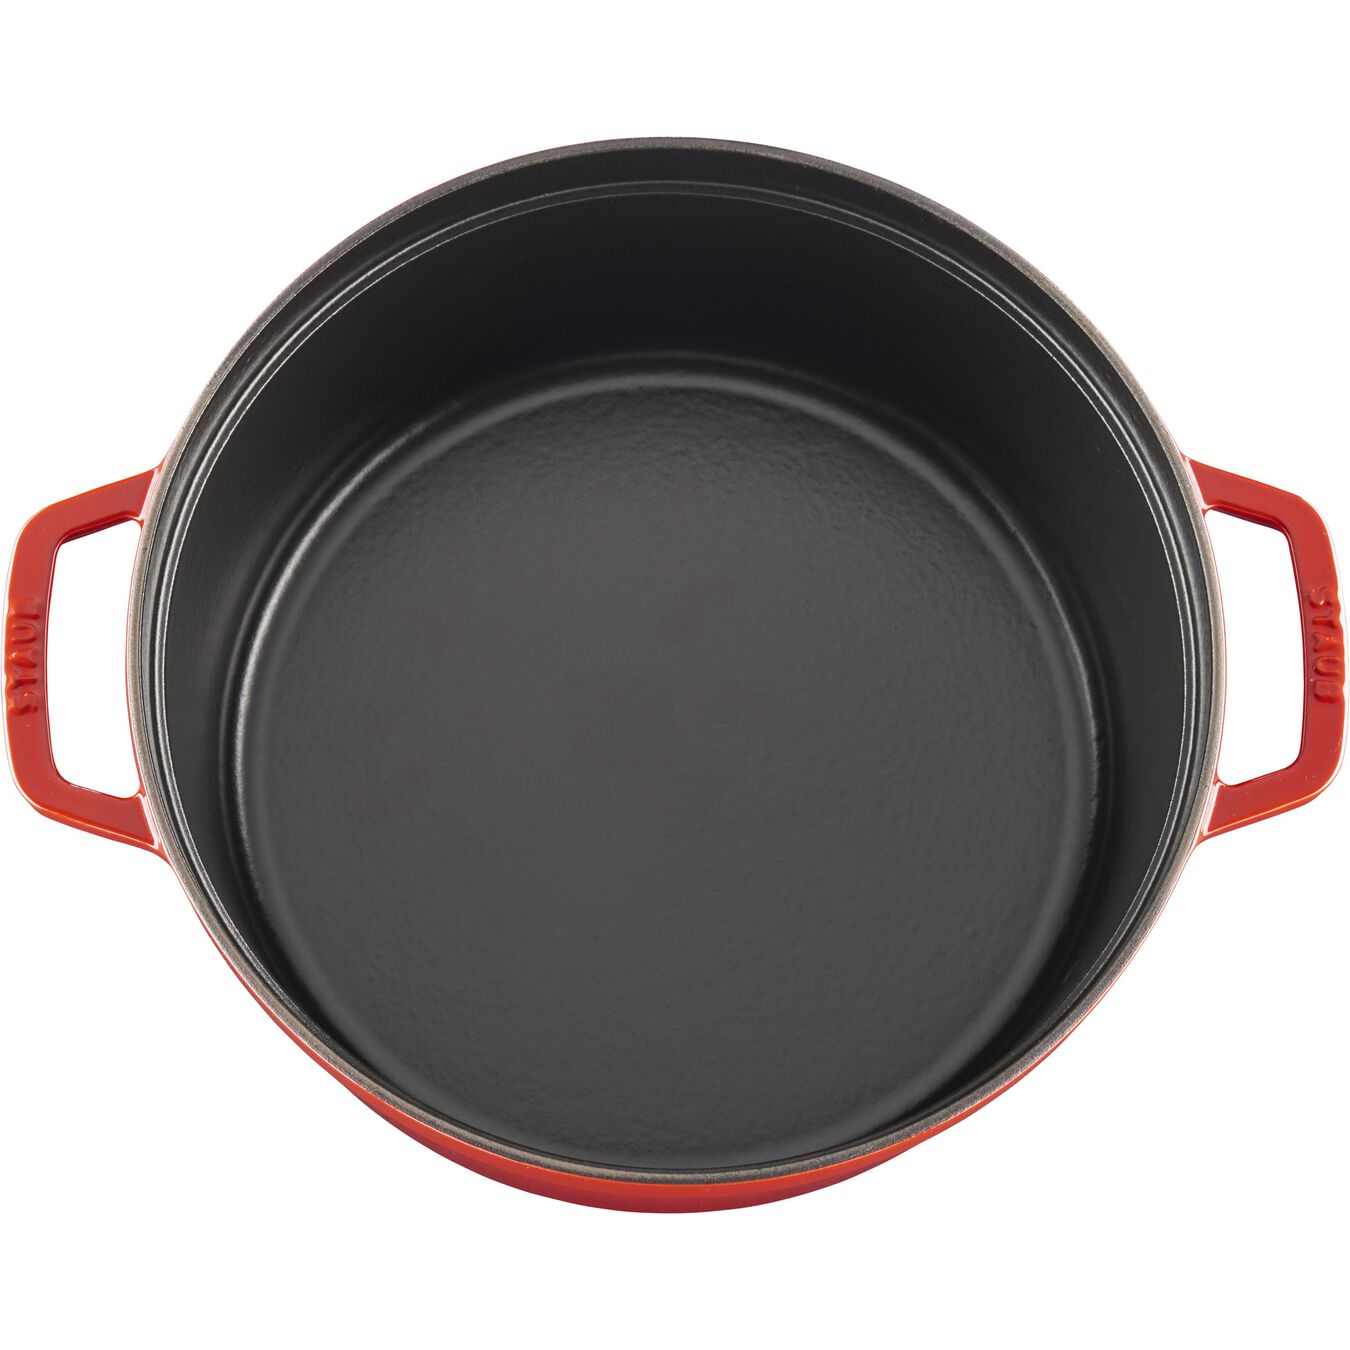 6 l round Braise + Grill, cherry - Visual Imperfections,,large 8